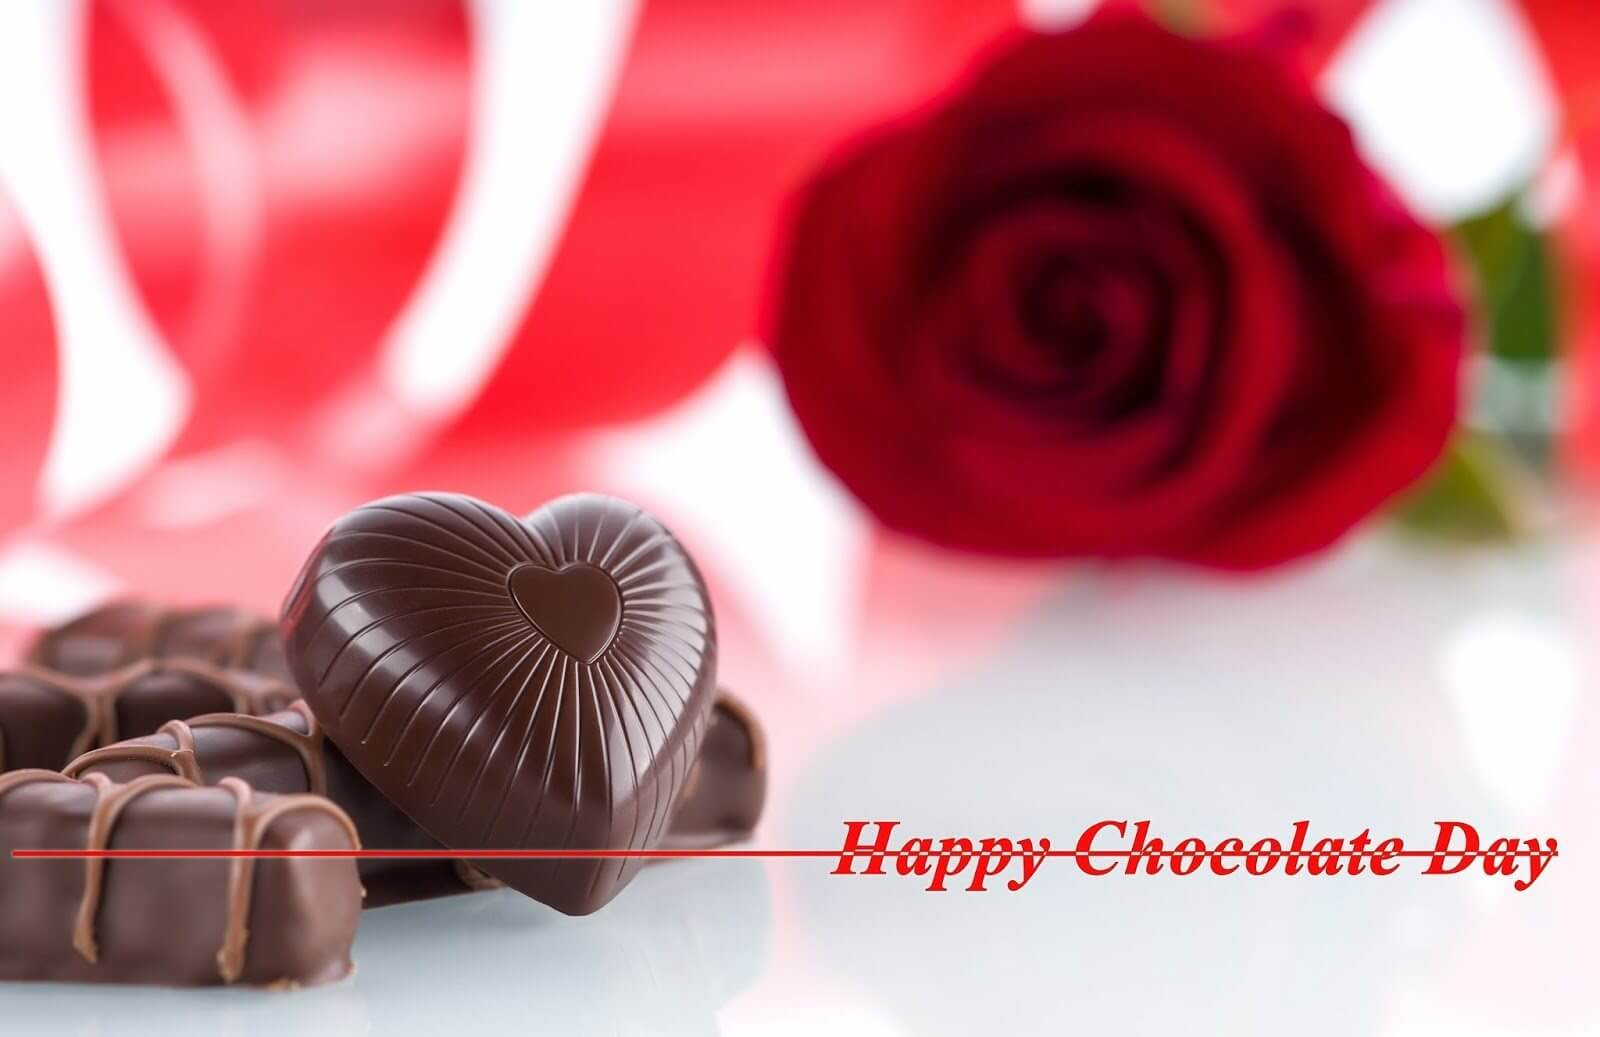 Happy Chocolate Day Girl Friend Heart Love Feb 9th Whats App Facebook Hd Wallpaper